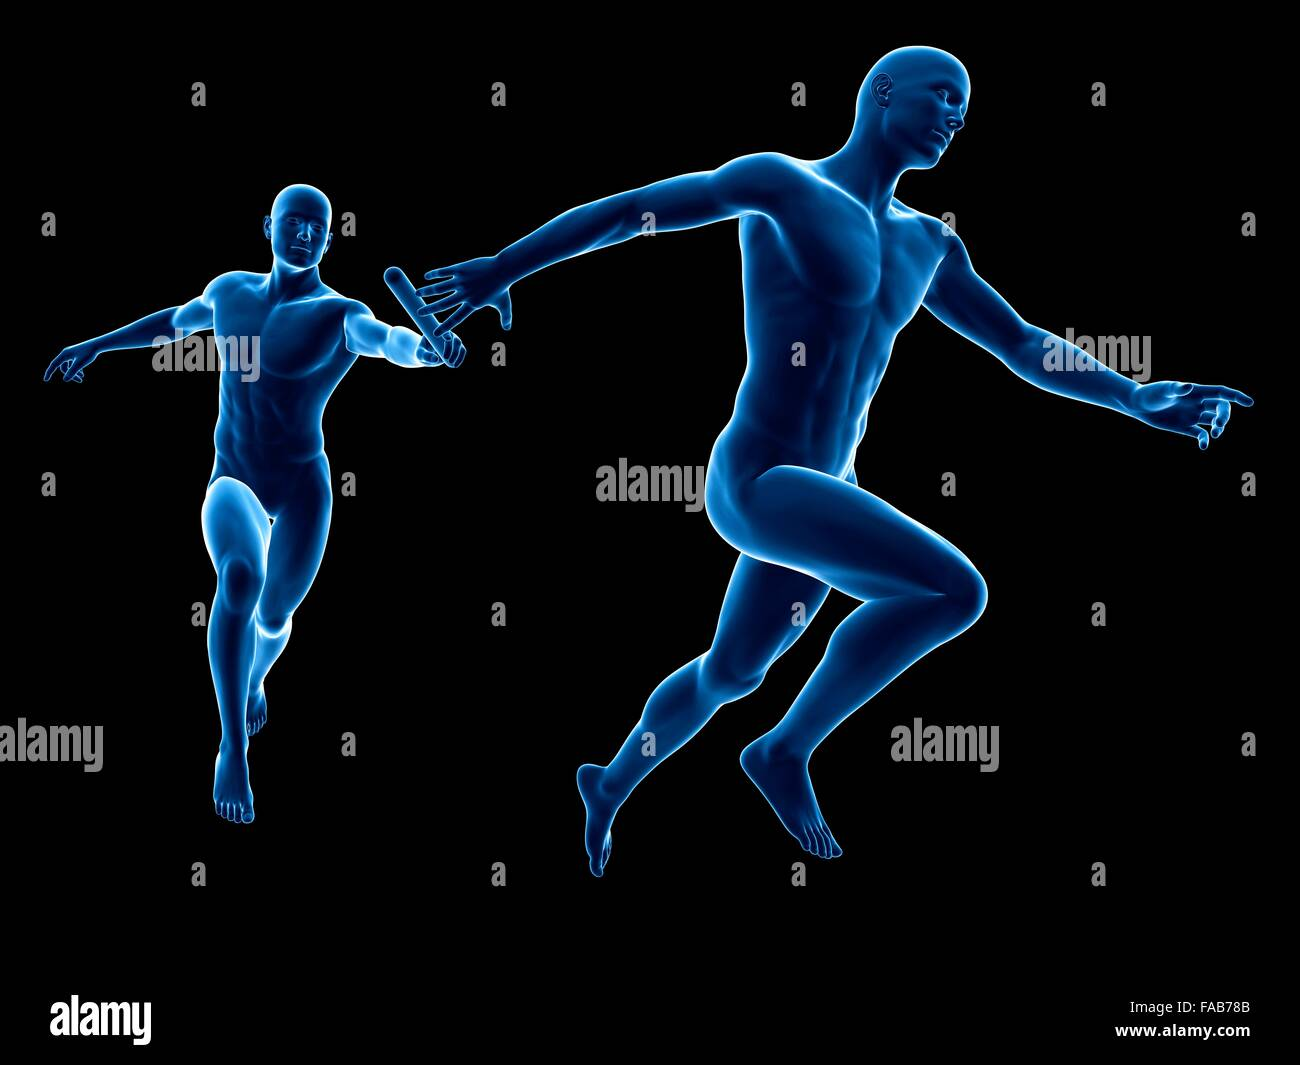 Anatomy Relay Race Runners Computer Stock Photos & Anatomy Relay ...